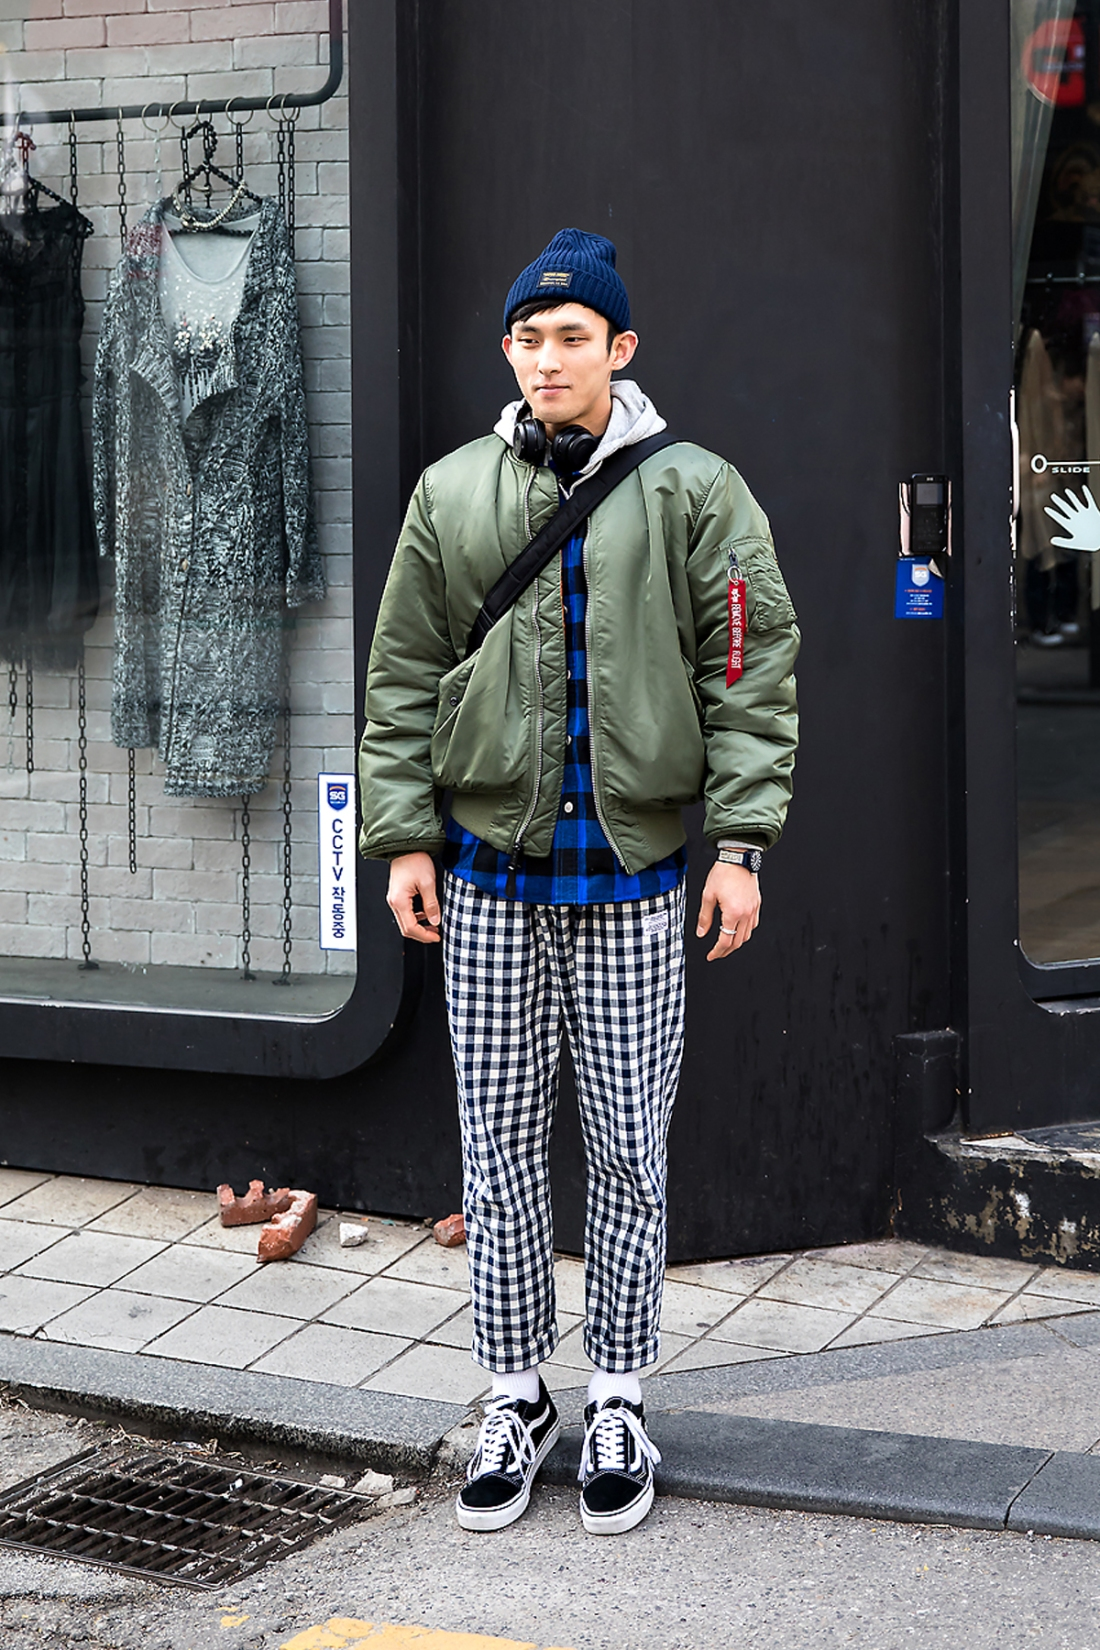 Lee Jaeho, Street Fashion 2017 in SEOUL.jpg